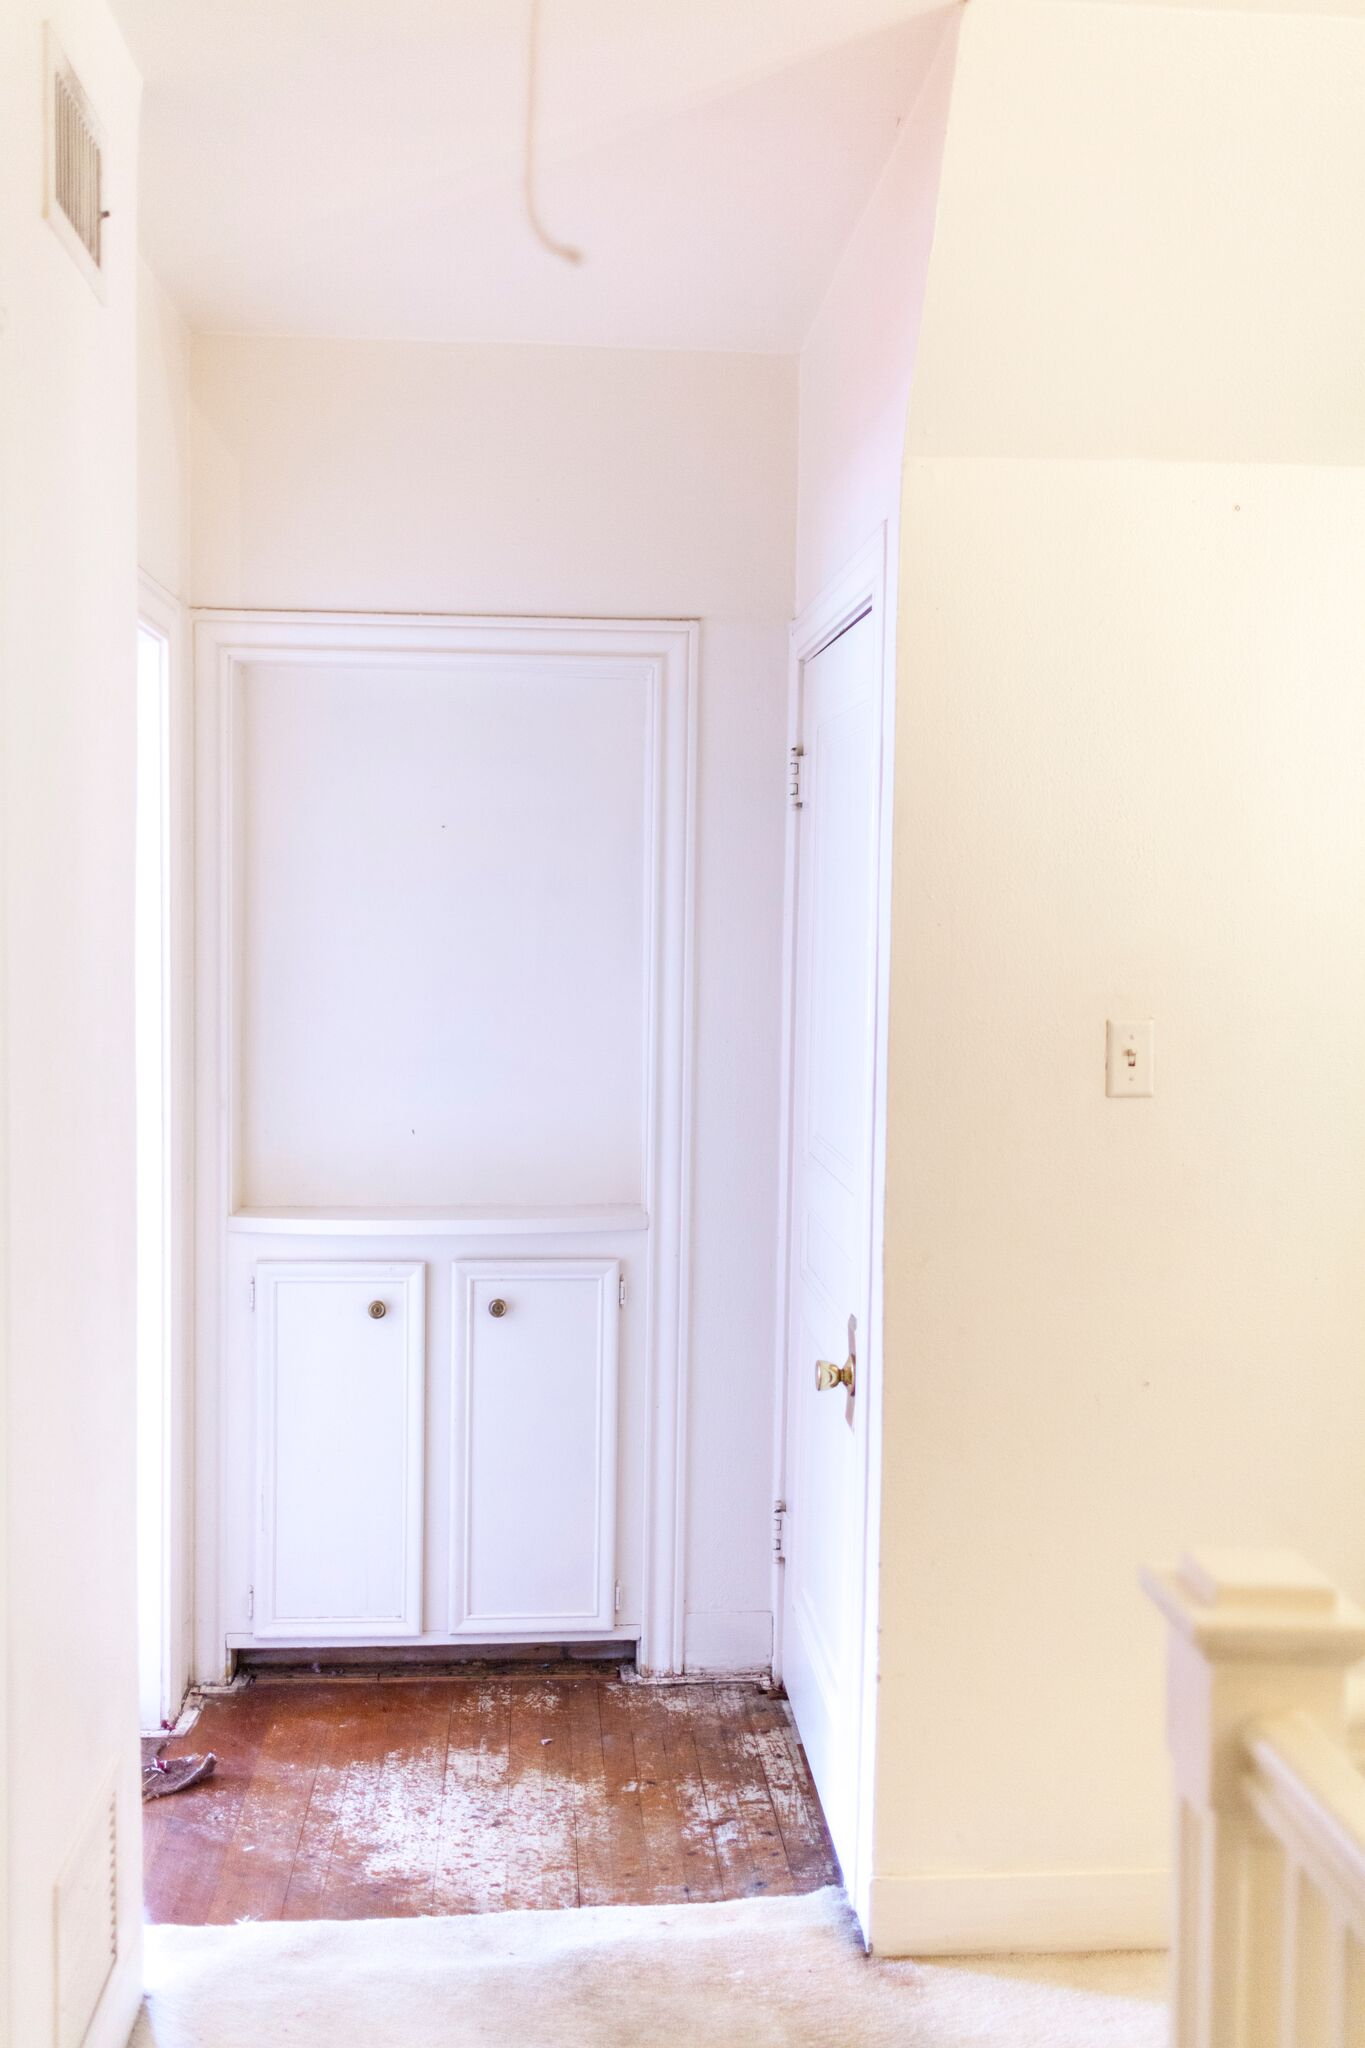 Repurposed closet - Symbio will be transforming this hallway closet to house all of the wiring, equipment and technology for the entire house.Read the whole blog here!